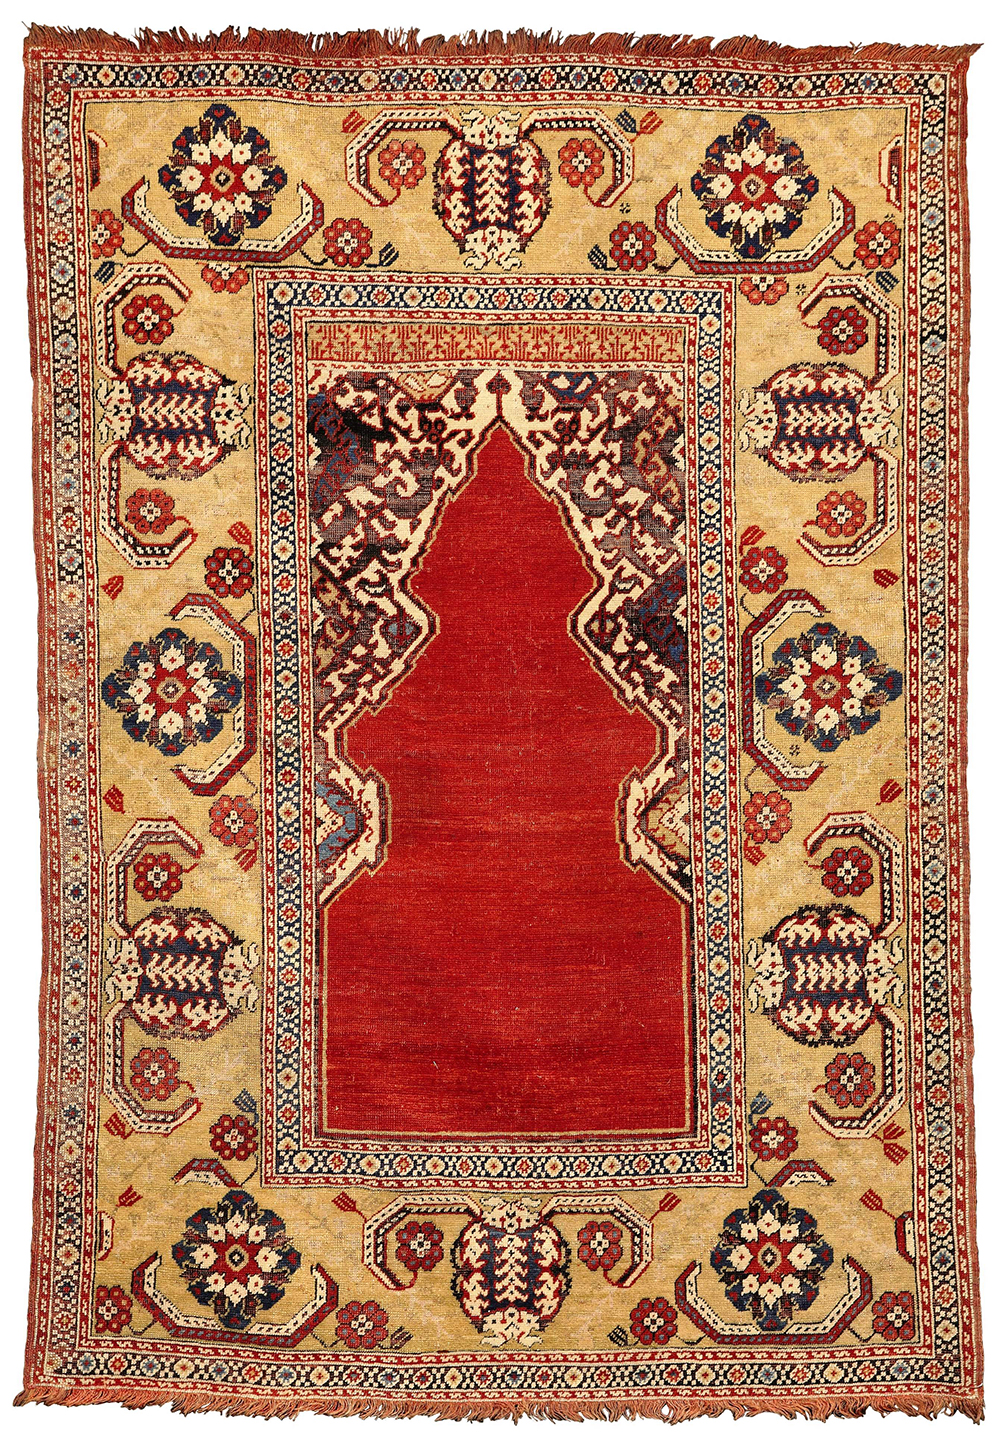 Lot 50, PROPERTY FROM THE COLLECTION OF THOMAS AND GWEN FARNHAM, A 'Transylvanian' prayer rug, West Anatolia, 17th century